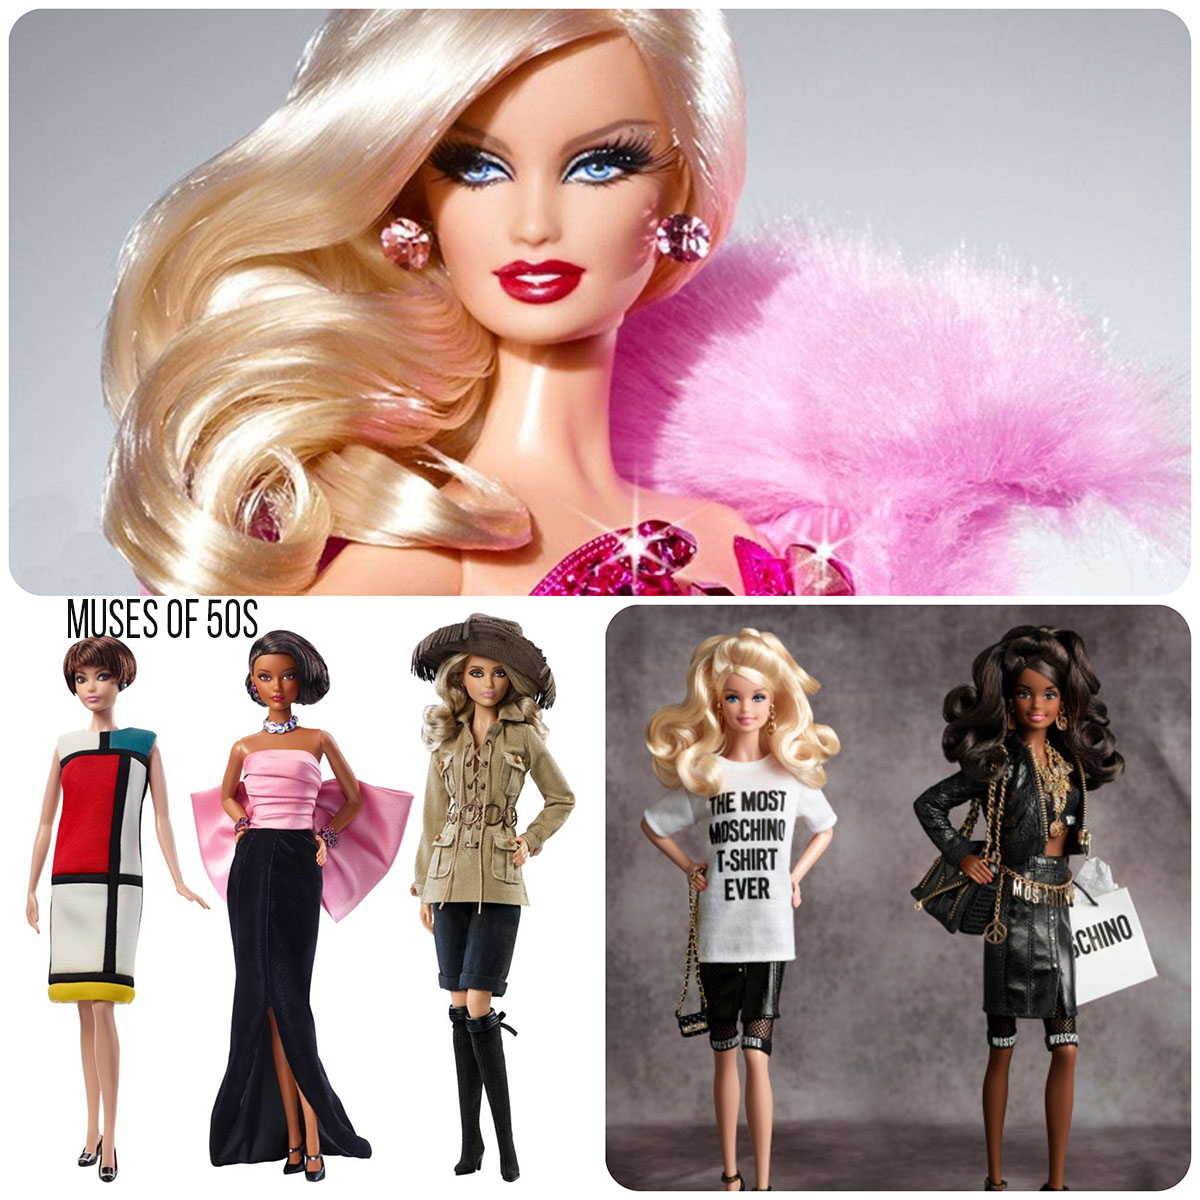 Barbie-Runway-Magazine-50s muses-Moschino